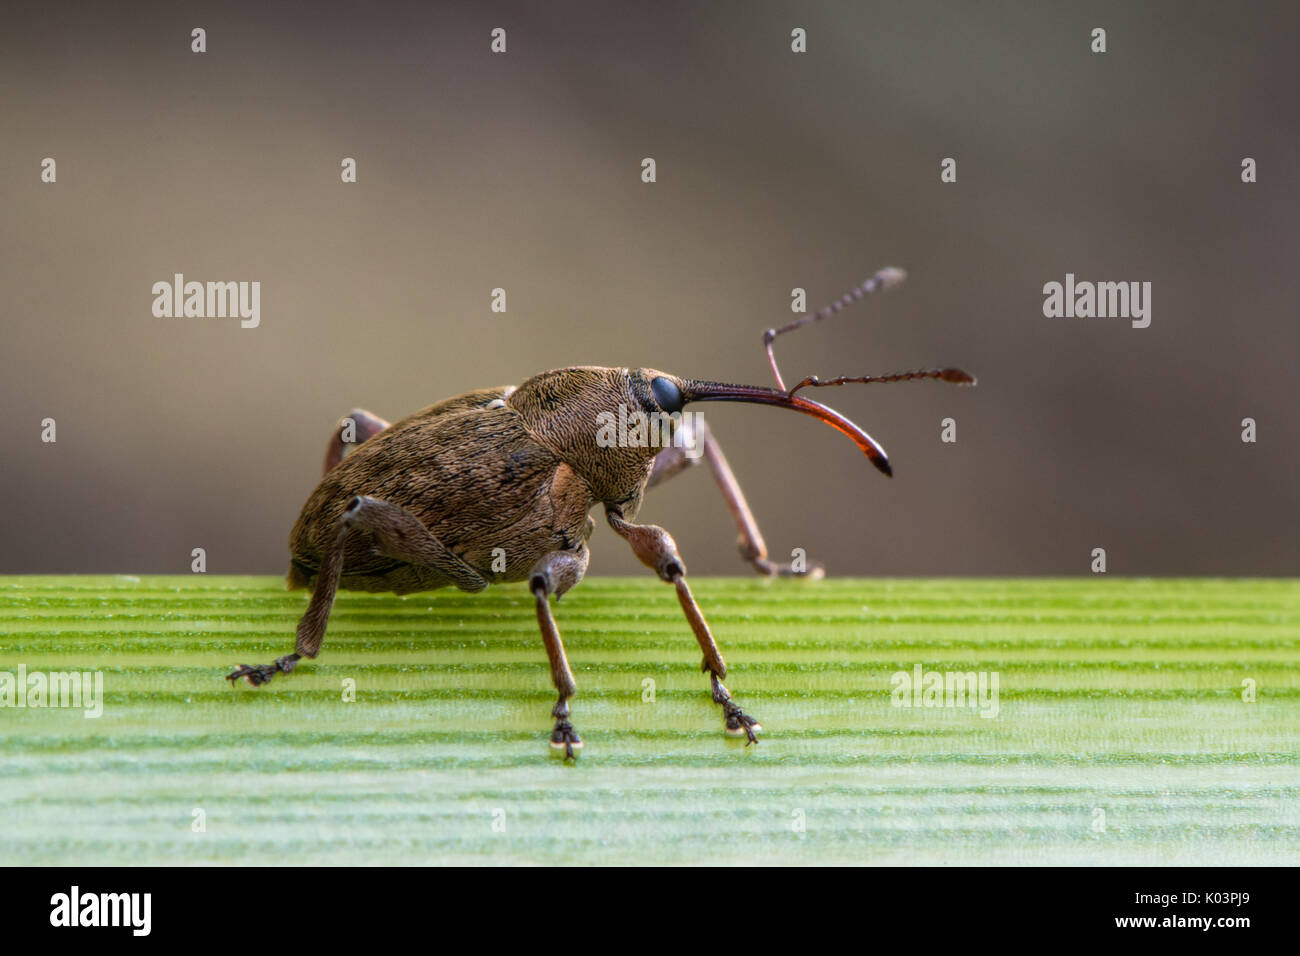 Large weevil with long rostrum. Extraordinary beetle in the family  Curculionidae, probably Curculio sp., in profile - Stock Image